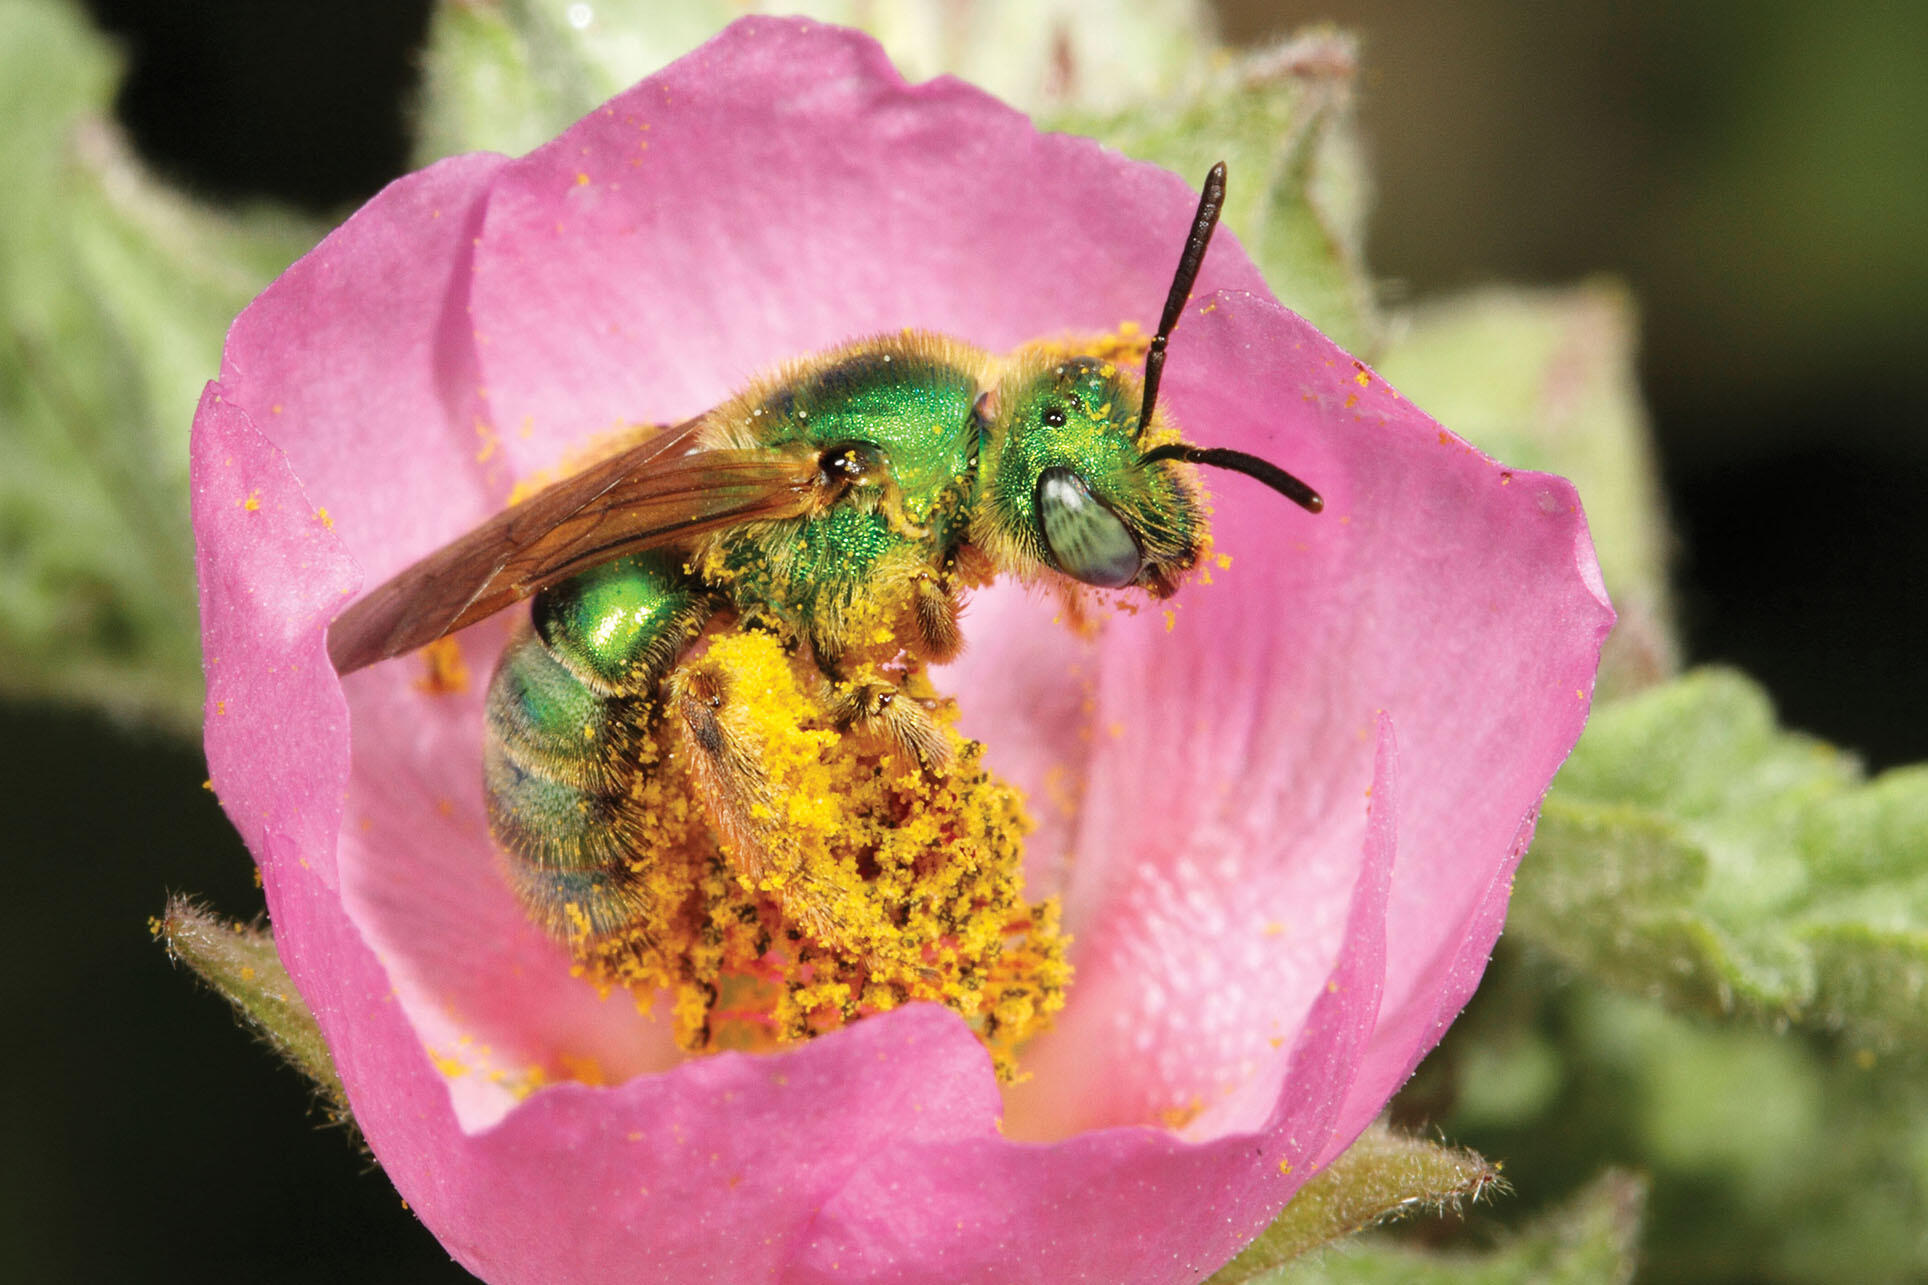 A female ultra green sweat bee covered in yellow pollen. (Photo by Rollin Coville.)